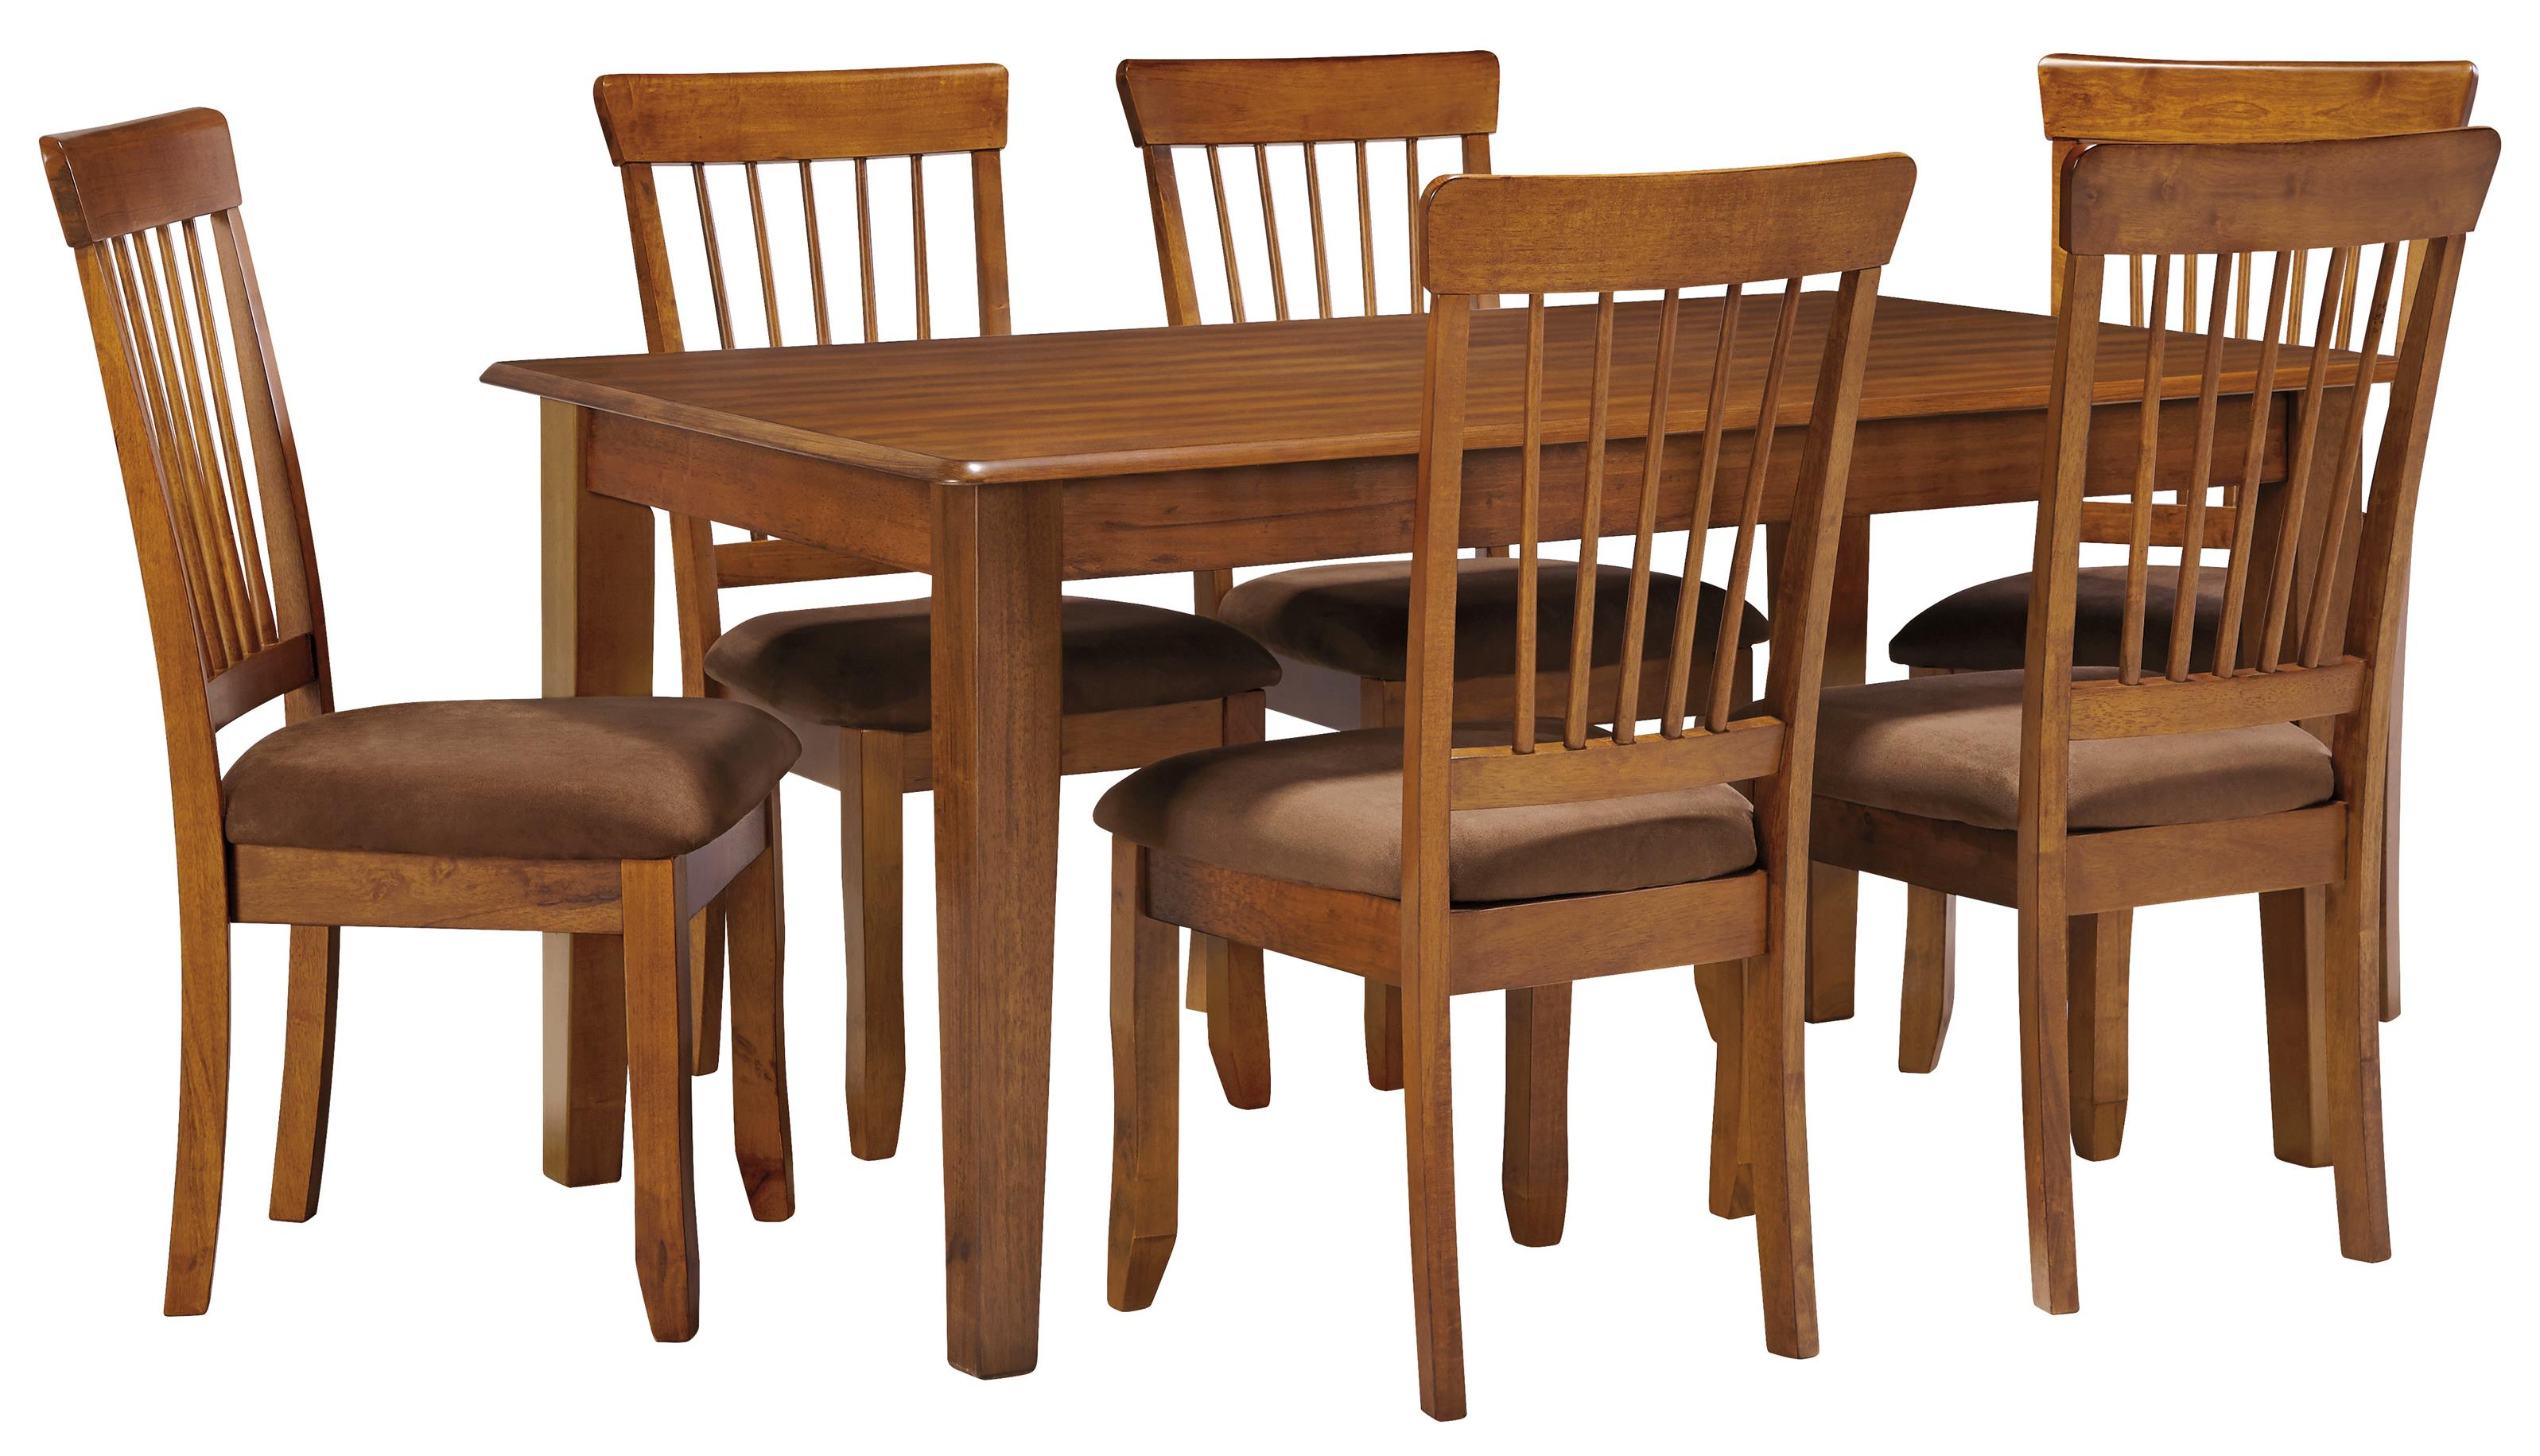 Ashley Furniture Berringer 7 Piece 36×60 Table Chair Set Ahfa  # Muebles Wichita Ks